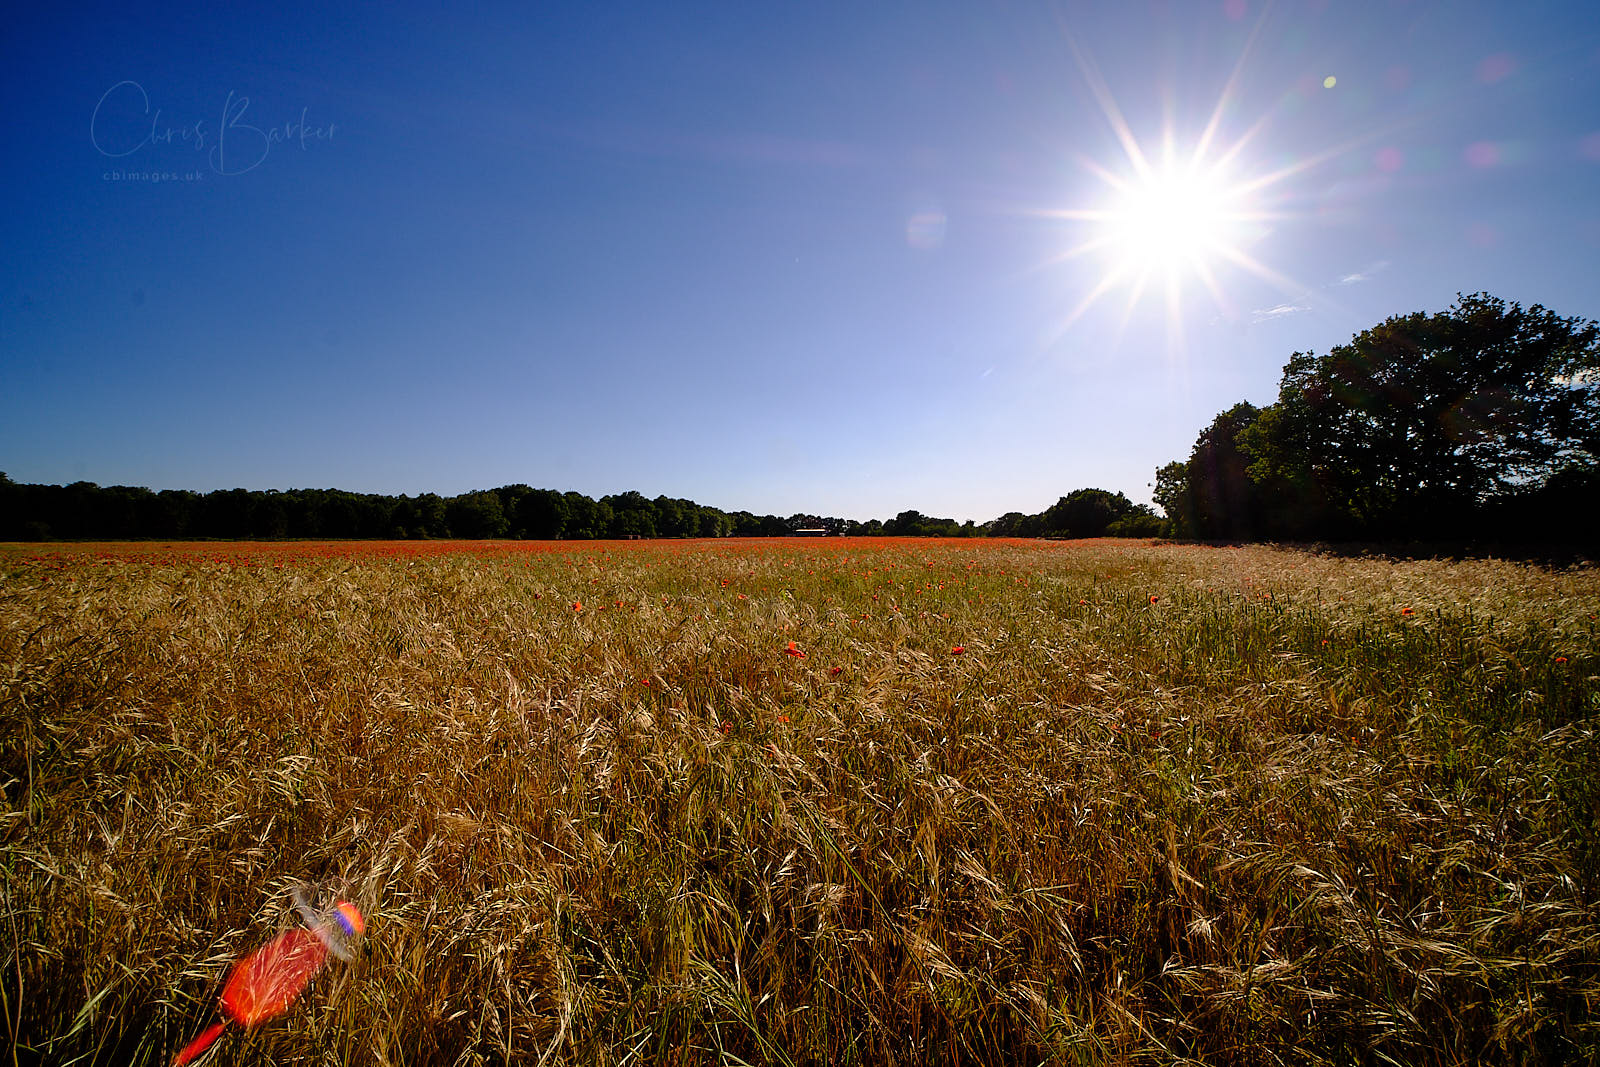 A wide angle photo of a cornfield covered in red poppies, with the sun.